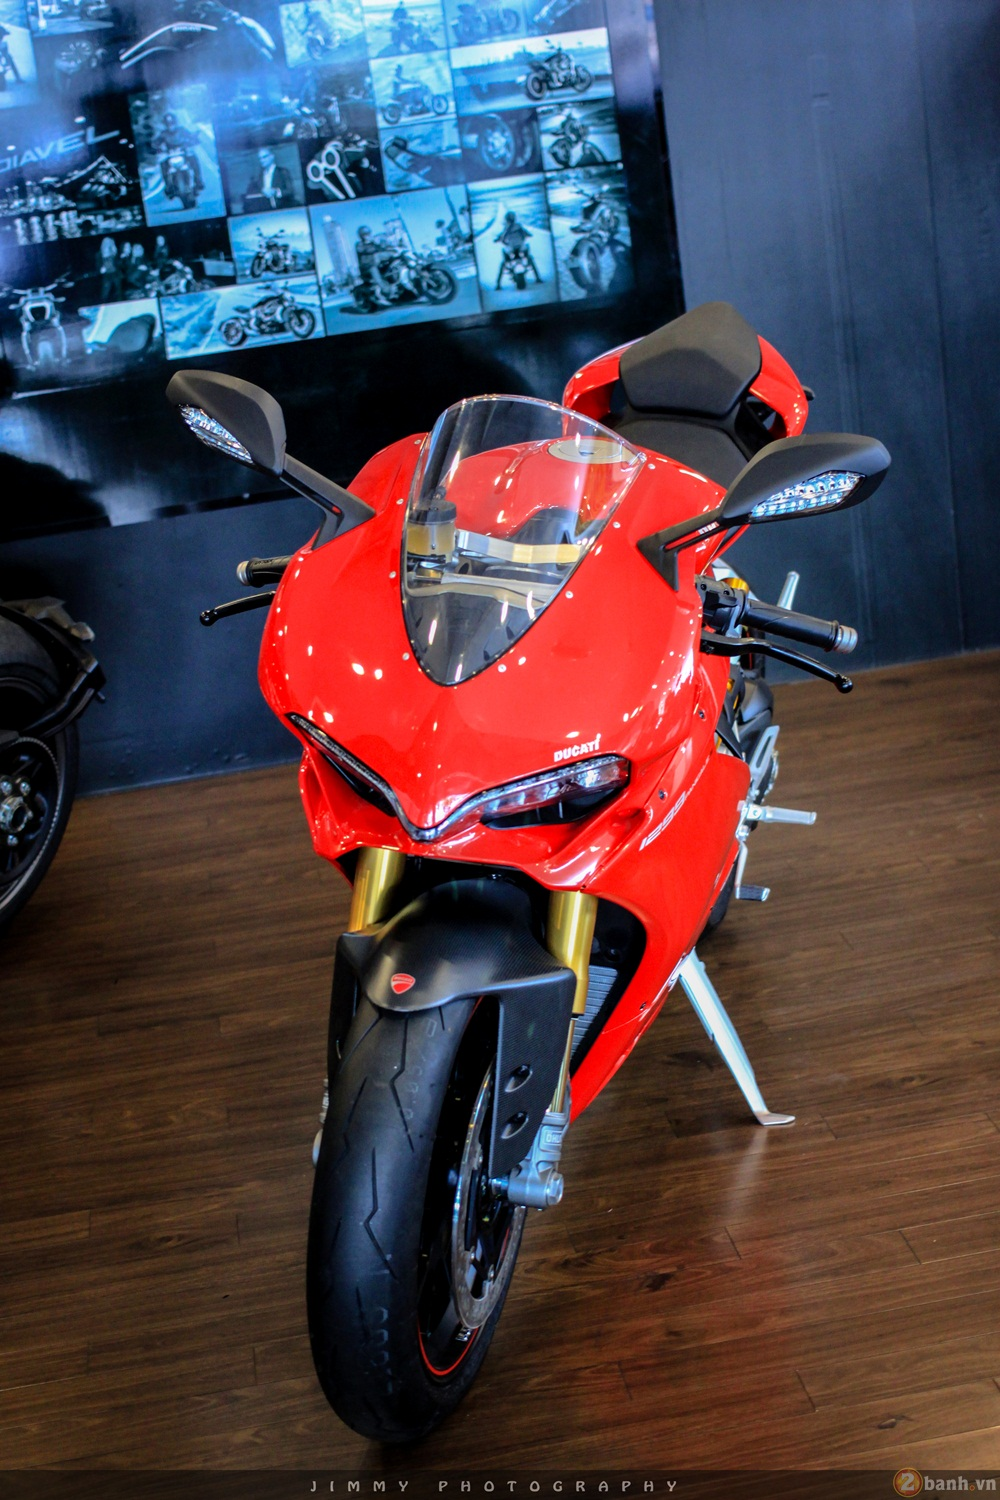 Chan dai Italy 1299 Panigale S chiec Super Sport gon nhe nhat hien nay - 7